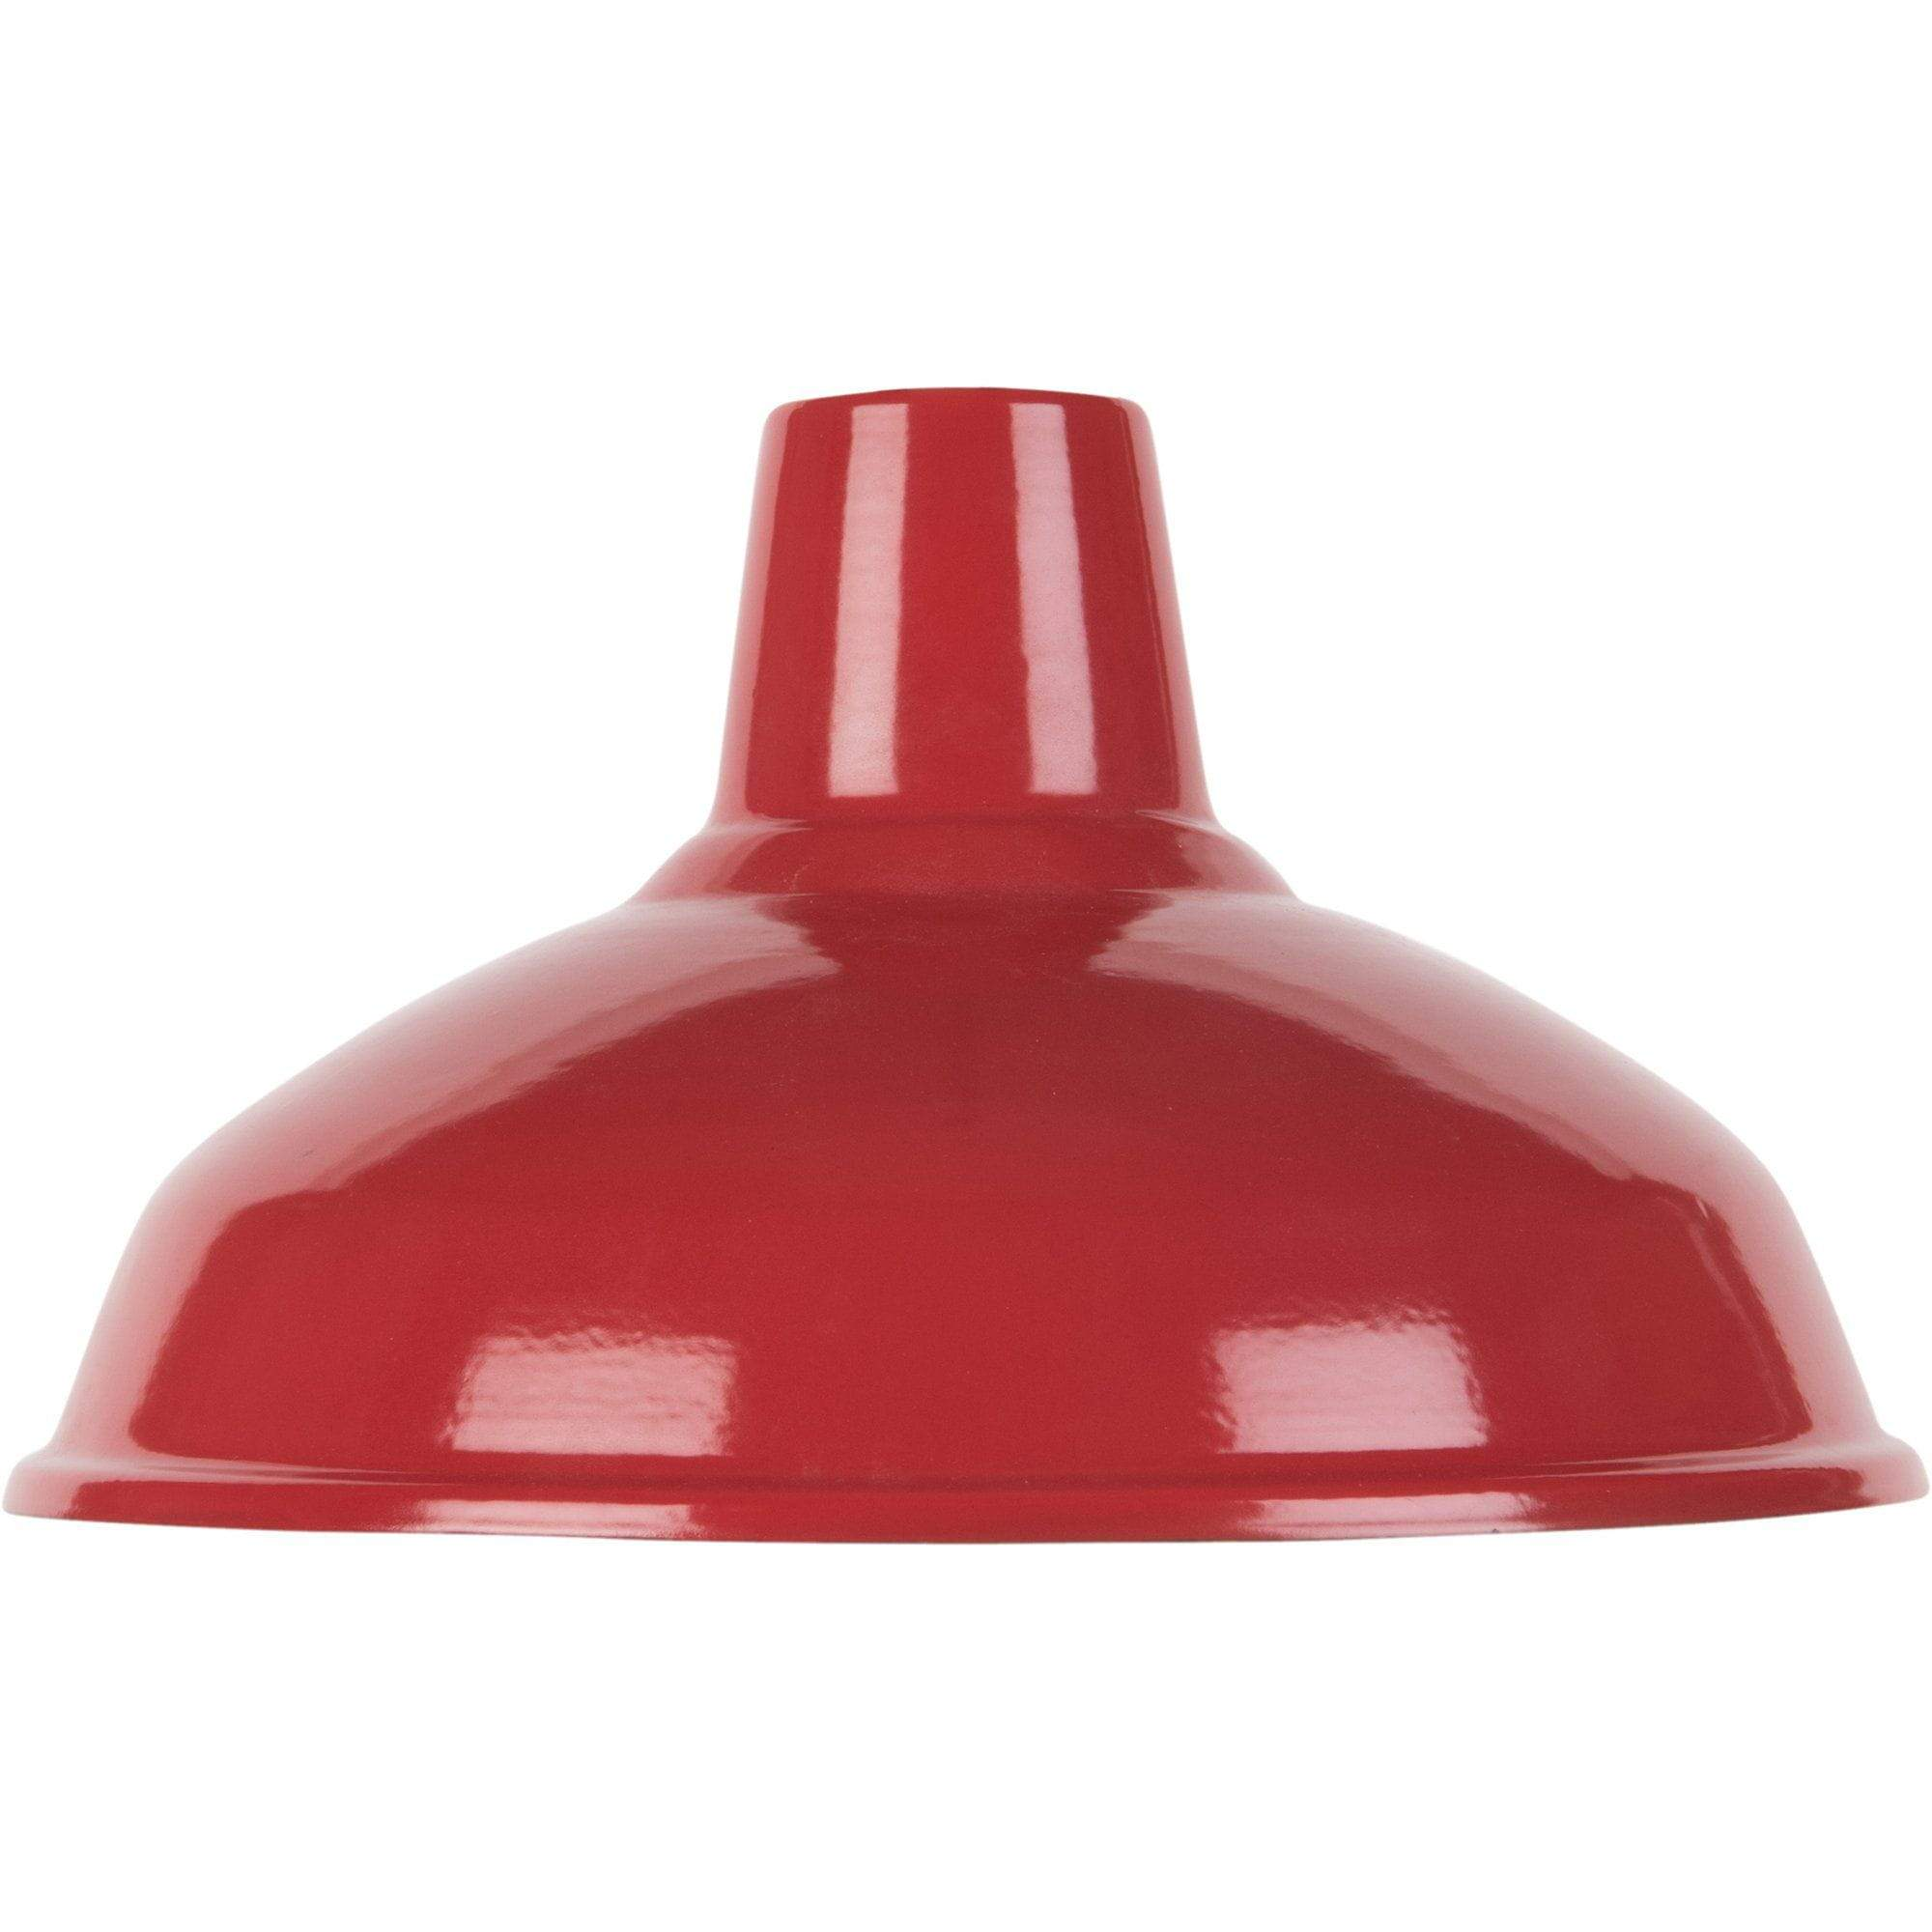 Ian Snow Ltd Red Large Enamel Lampshade